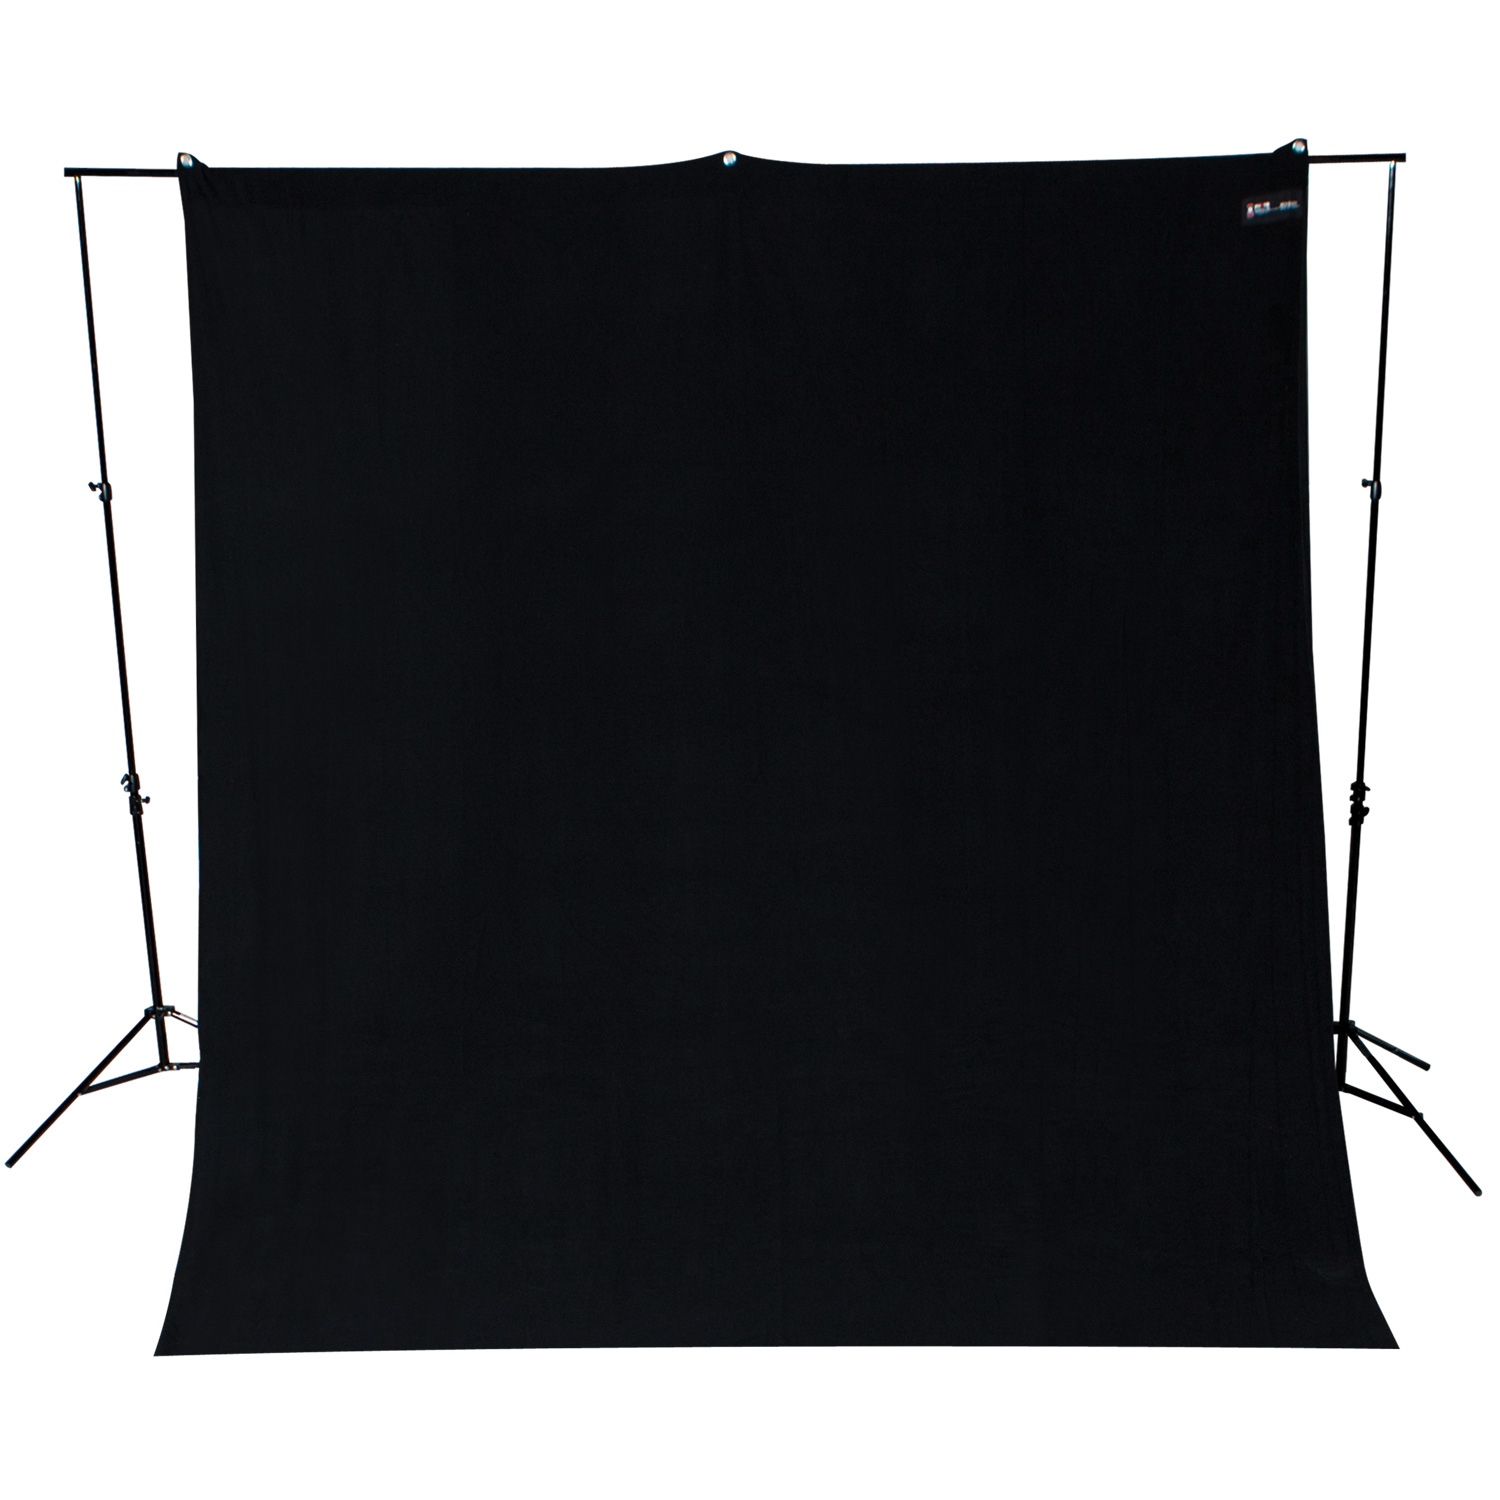 Wrinkle-Resistant 9' x 10' Rich Black Backdrop